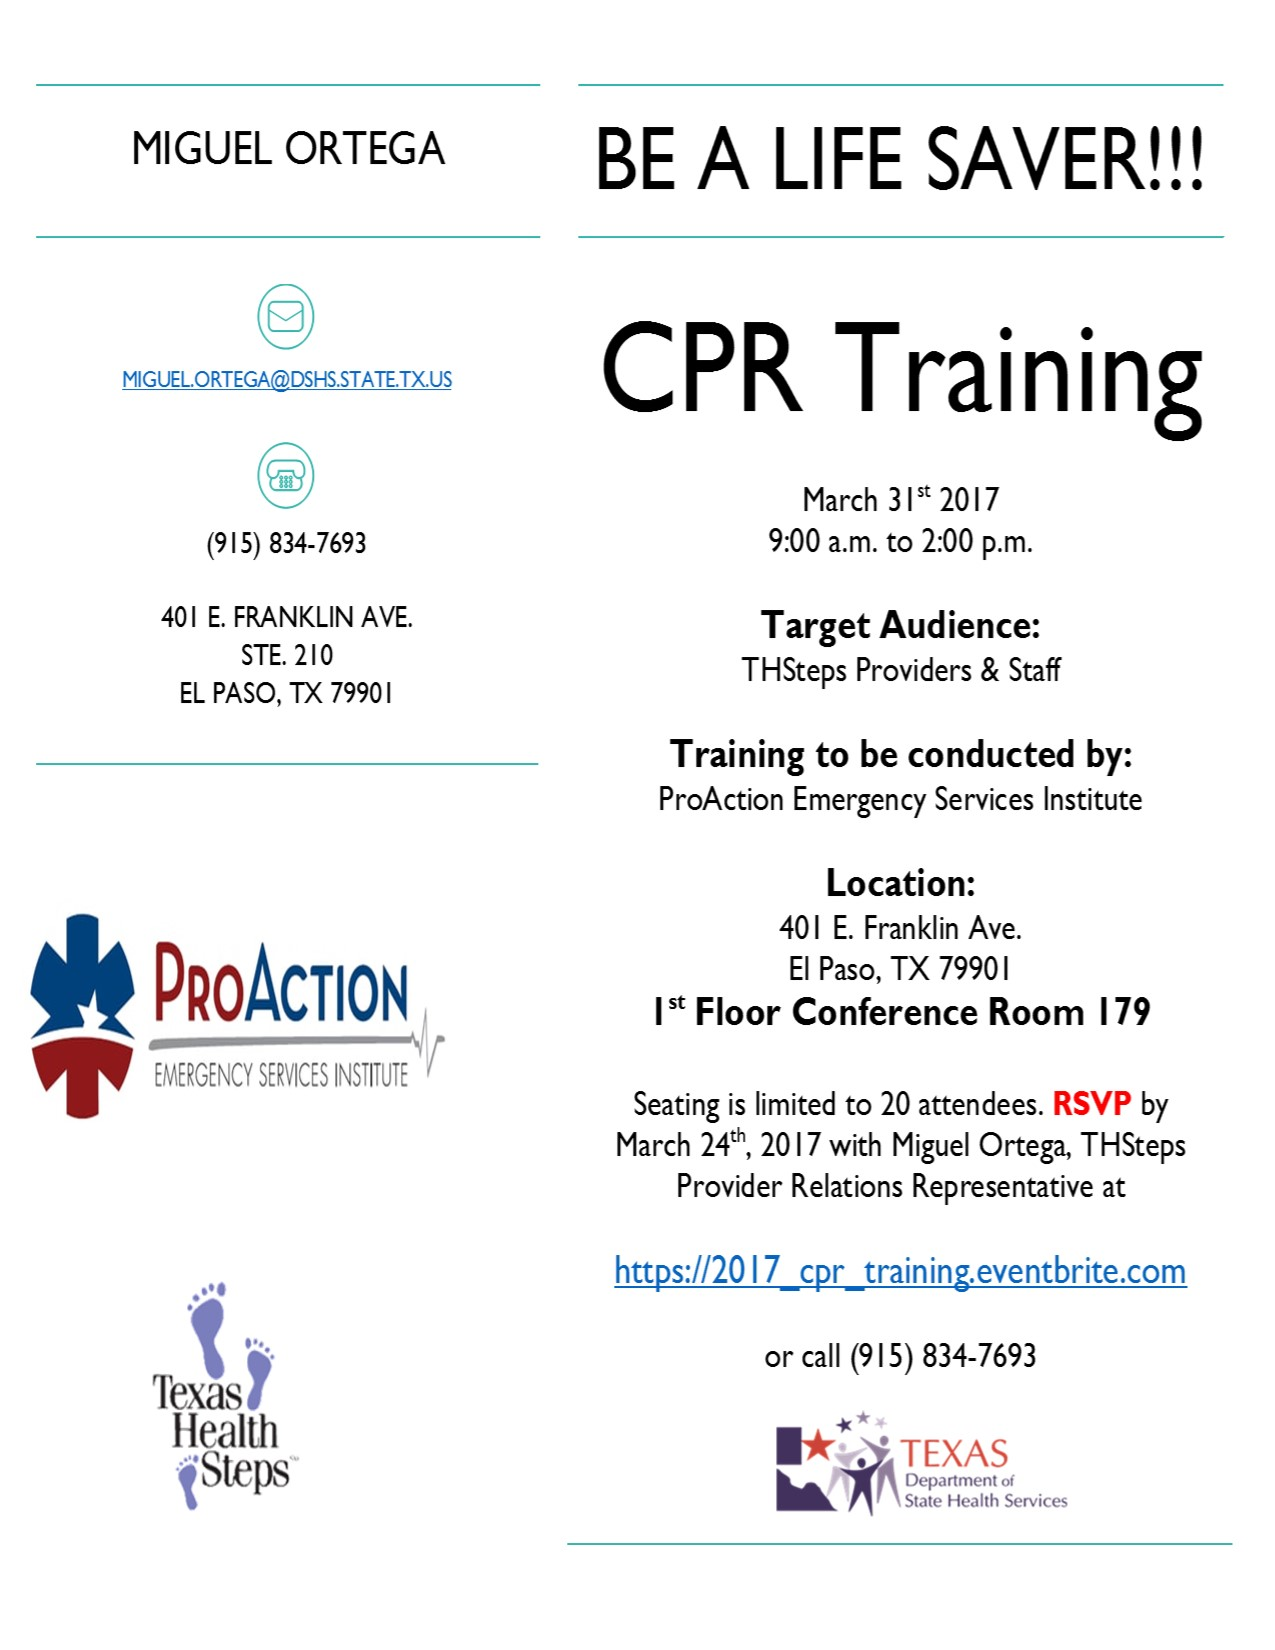 Cpr training tickets fri mar 31 2017 at 900 am eventbrite tags things to do in el paso tx class health 1betcityfo Image collections